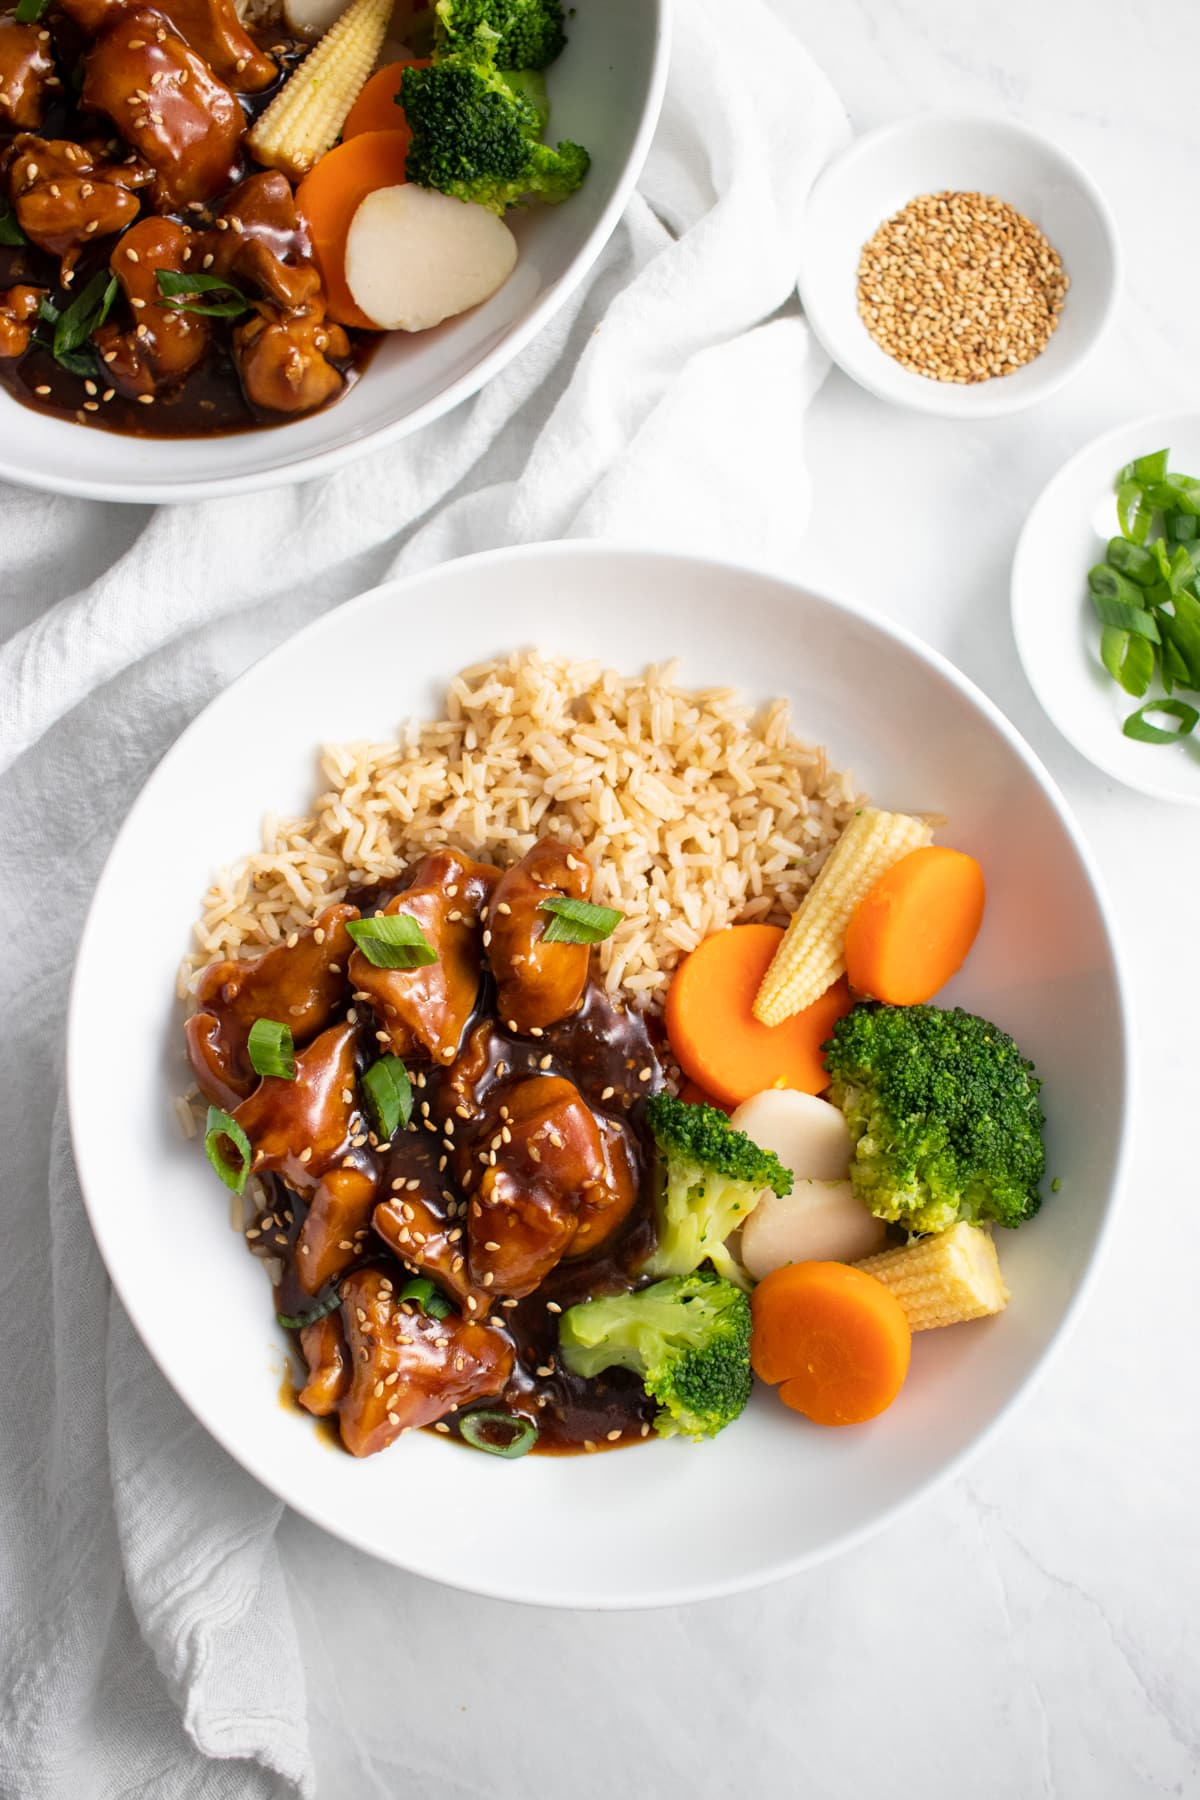 Looking down at a bowl of sesame chicken served with brown rice and steamed veggies. A second bowl of chicken, as well as small bowls of toasted sesame seeds and sliced green onion tops sit above it.